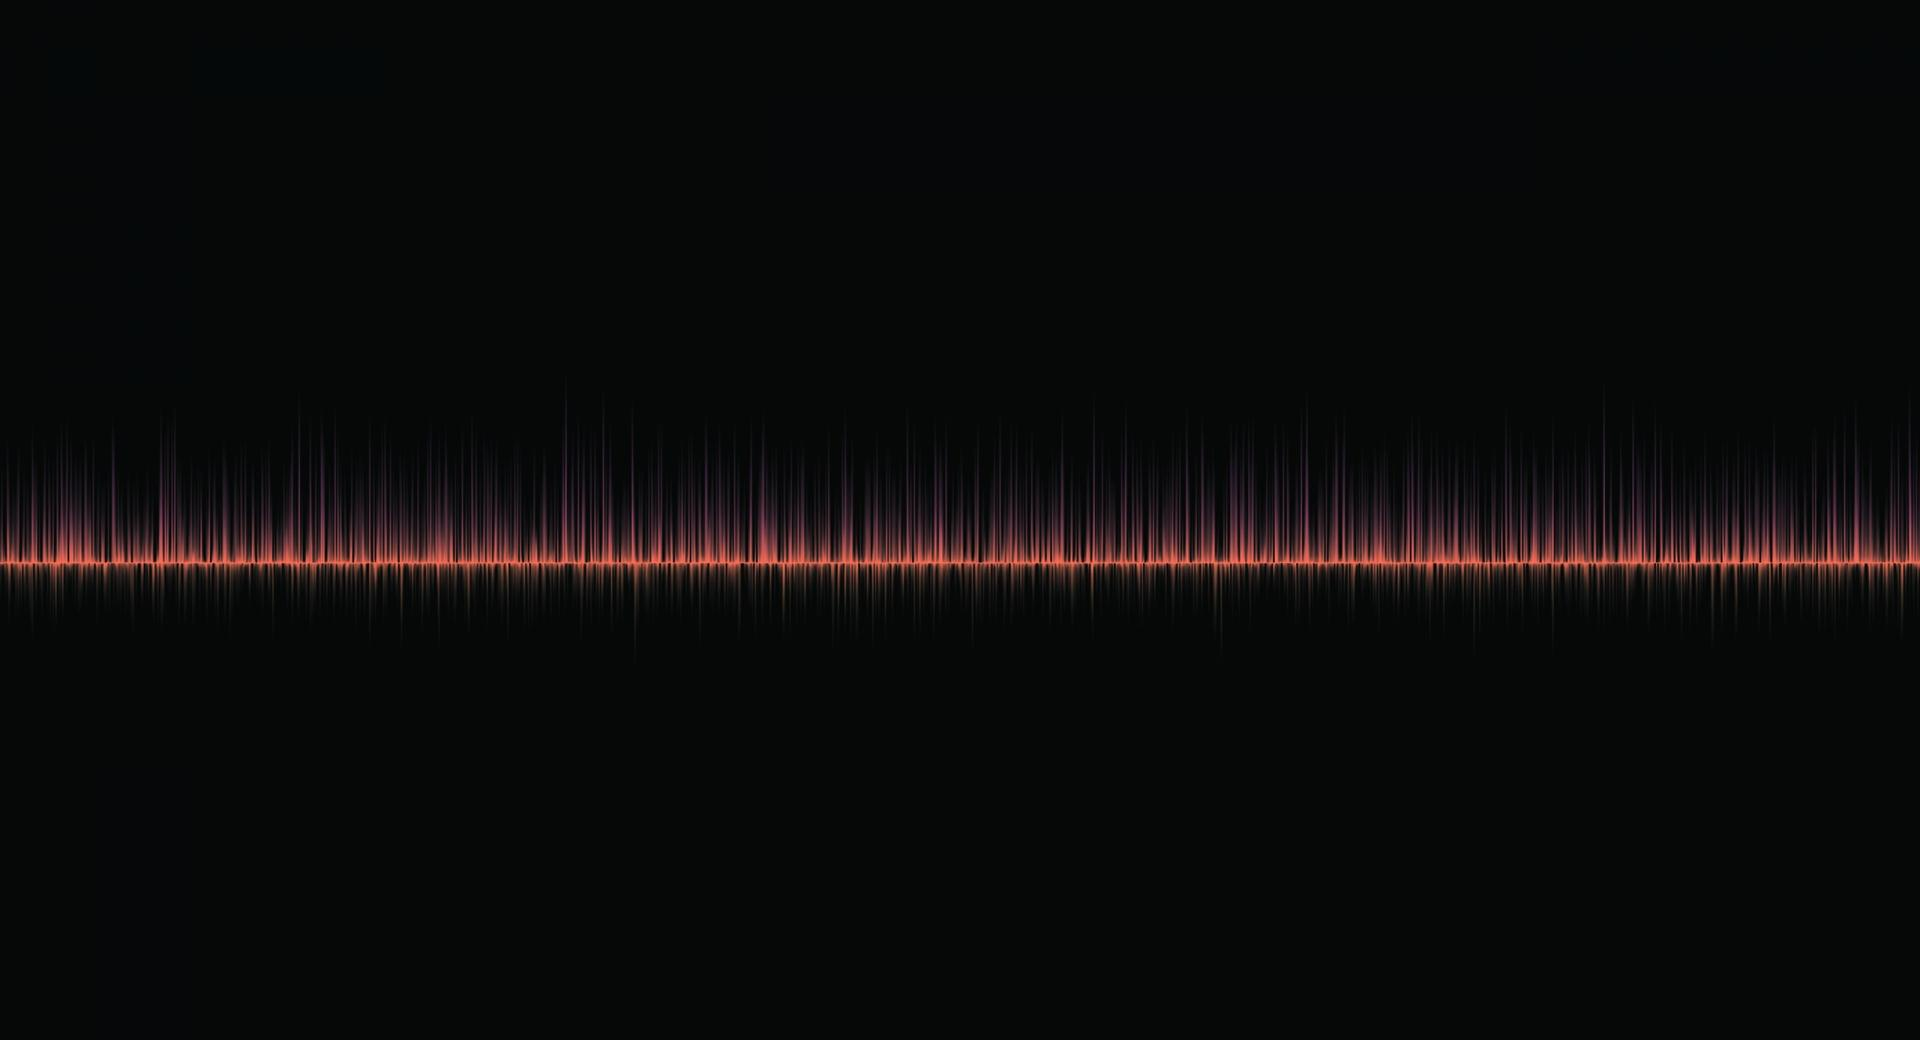 Sound Waves wallpapers HD quality